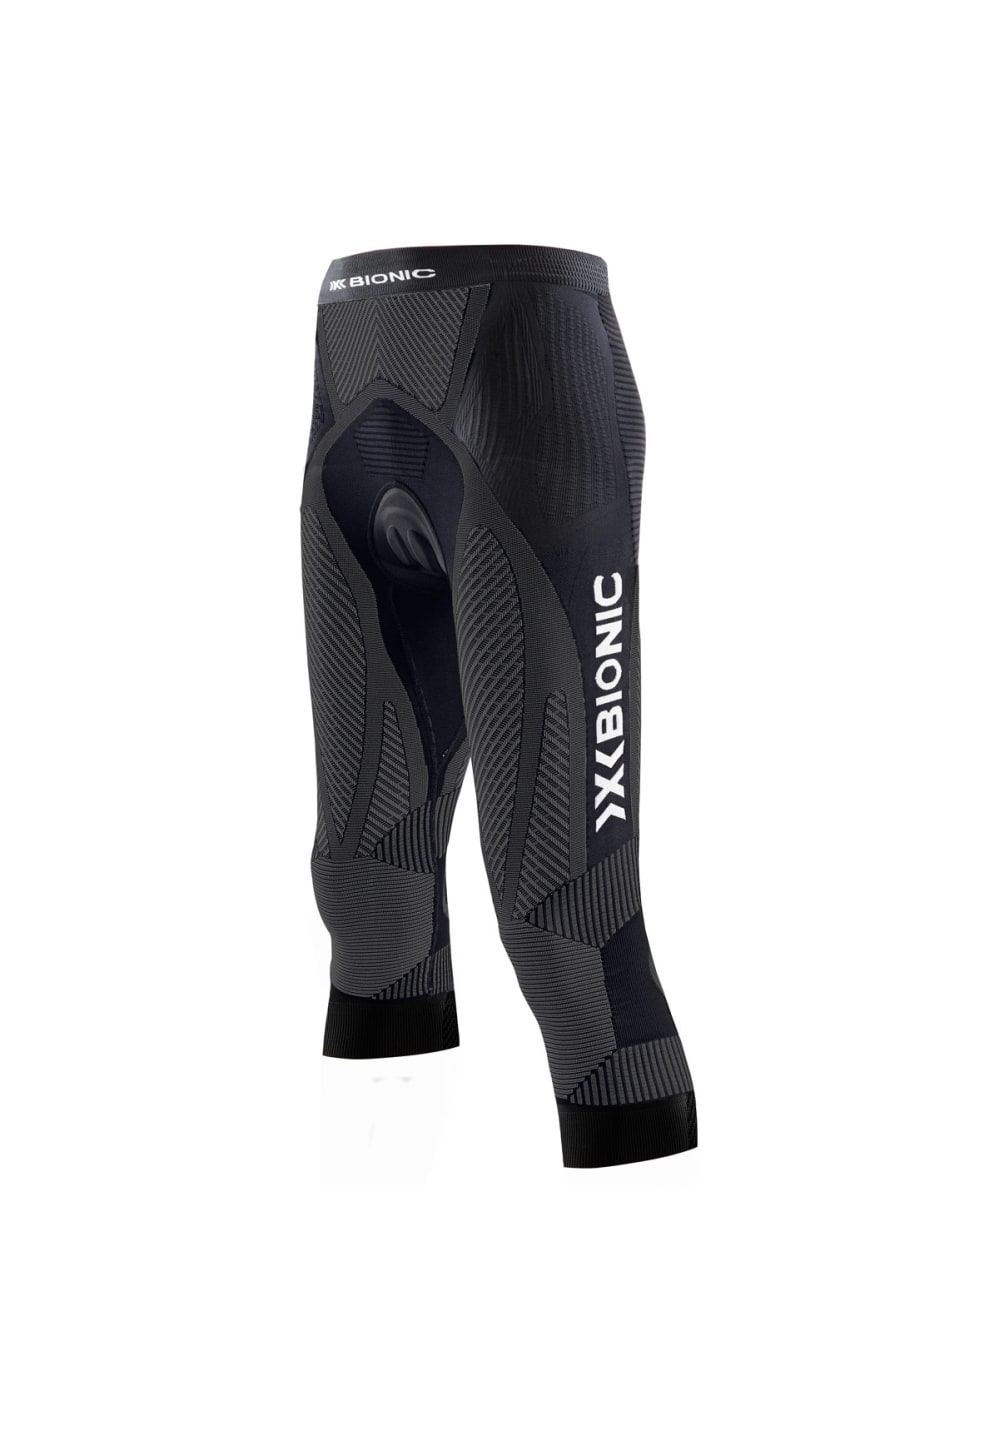 X-Bionic Biking The Trick Pants Medium Comfort - Radhosen für Damen - Schwarz,